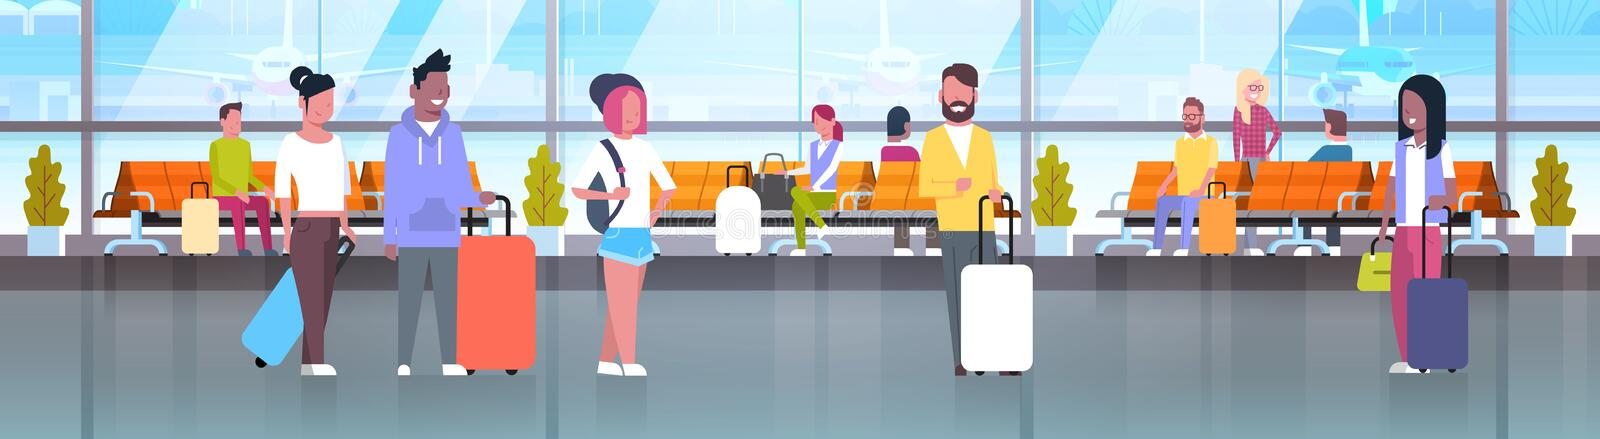 People In Airport Travelers With Baggage At Waiting Hall Or Departure Lounge Terminal Horizontal Banner. Flat Vector Illustration stock illustration